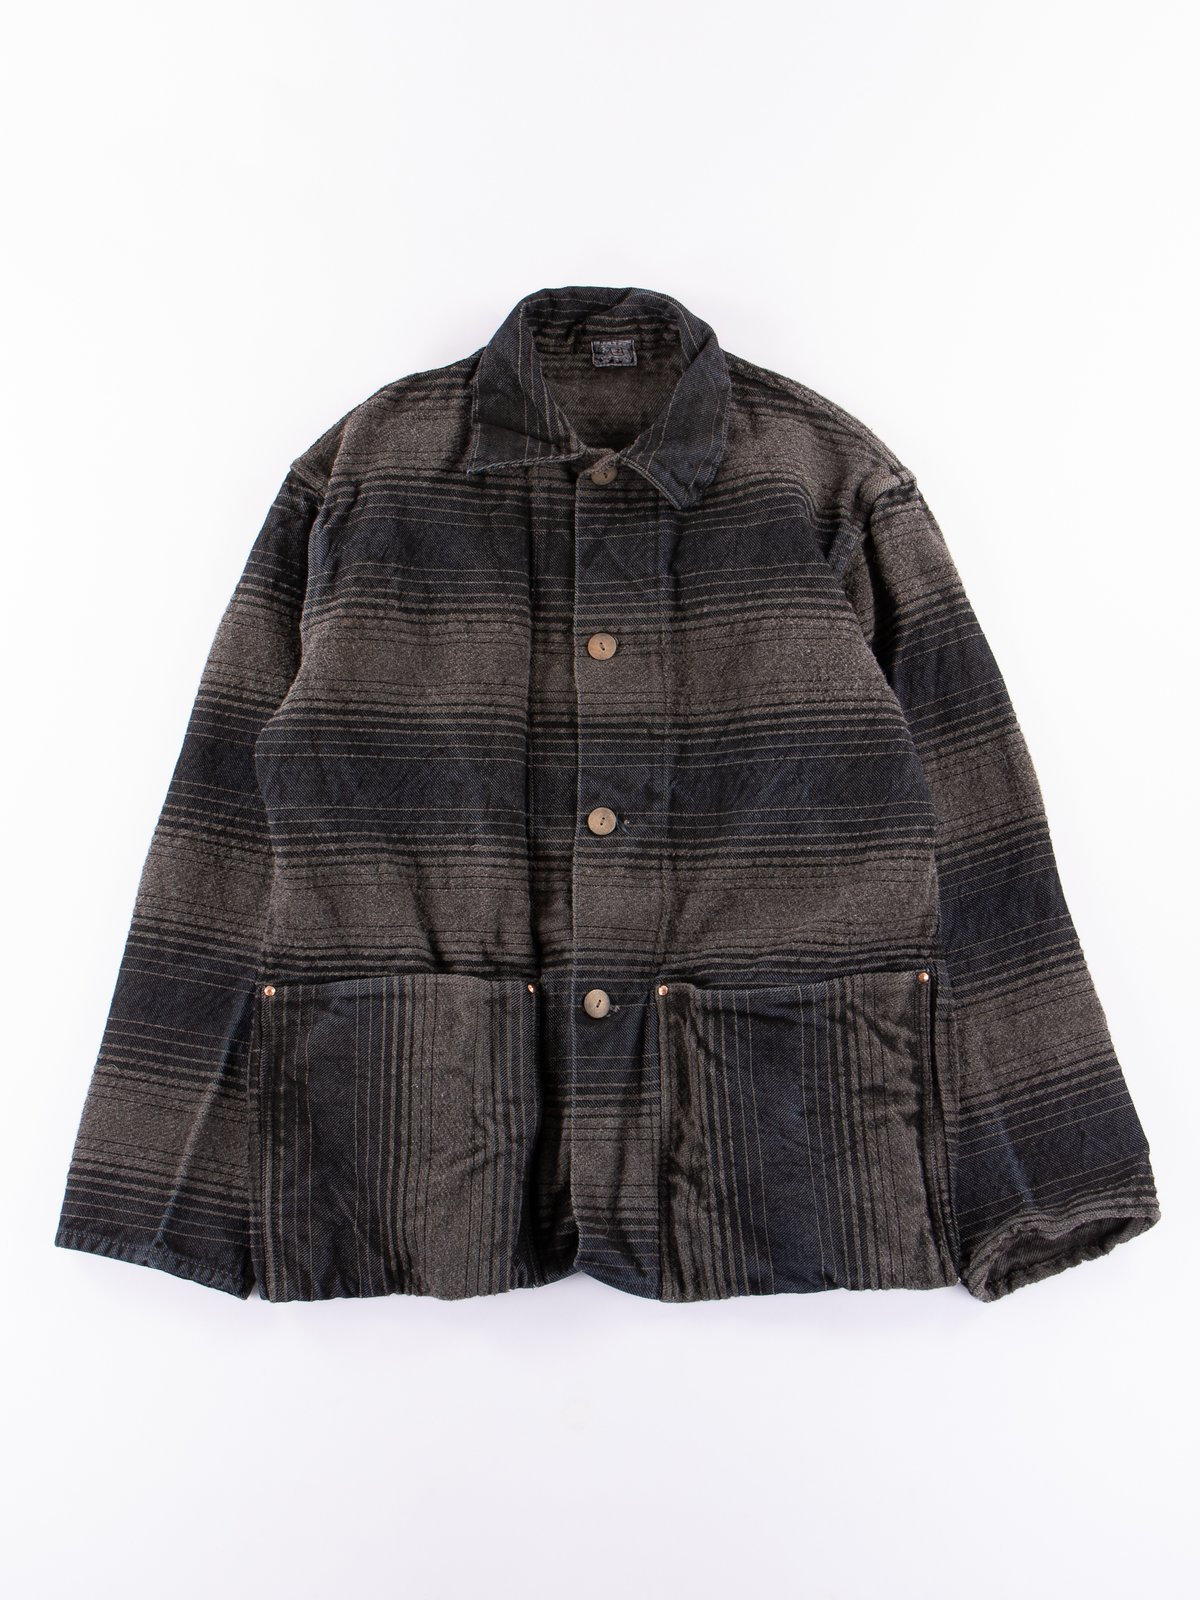 Indian Black Dye Doppler Stripe Collared Shepherd's Coat - Image 1